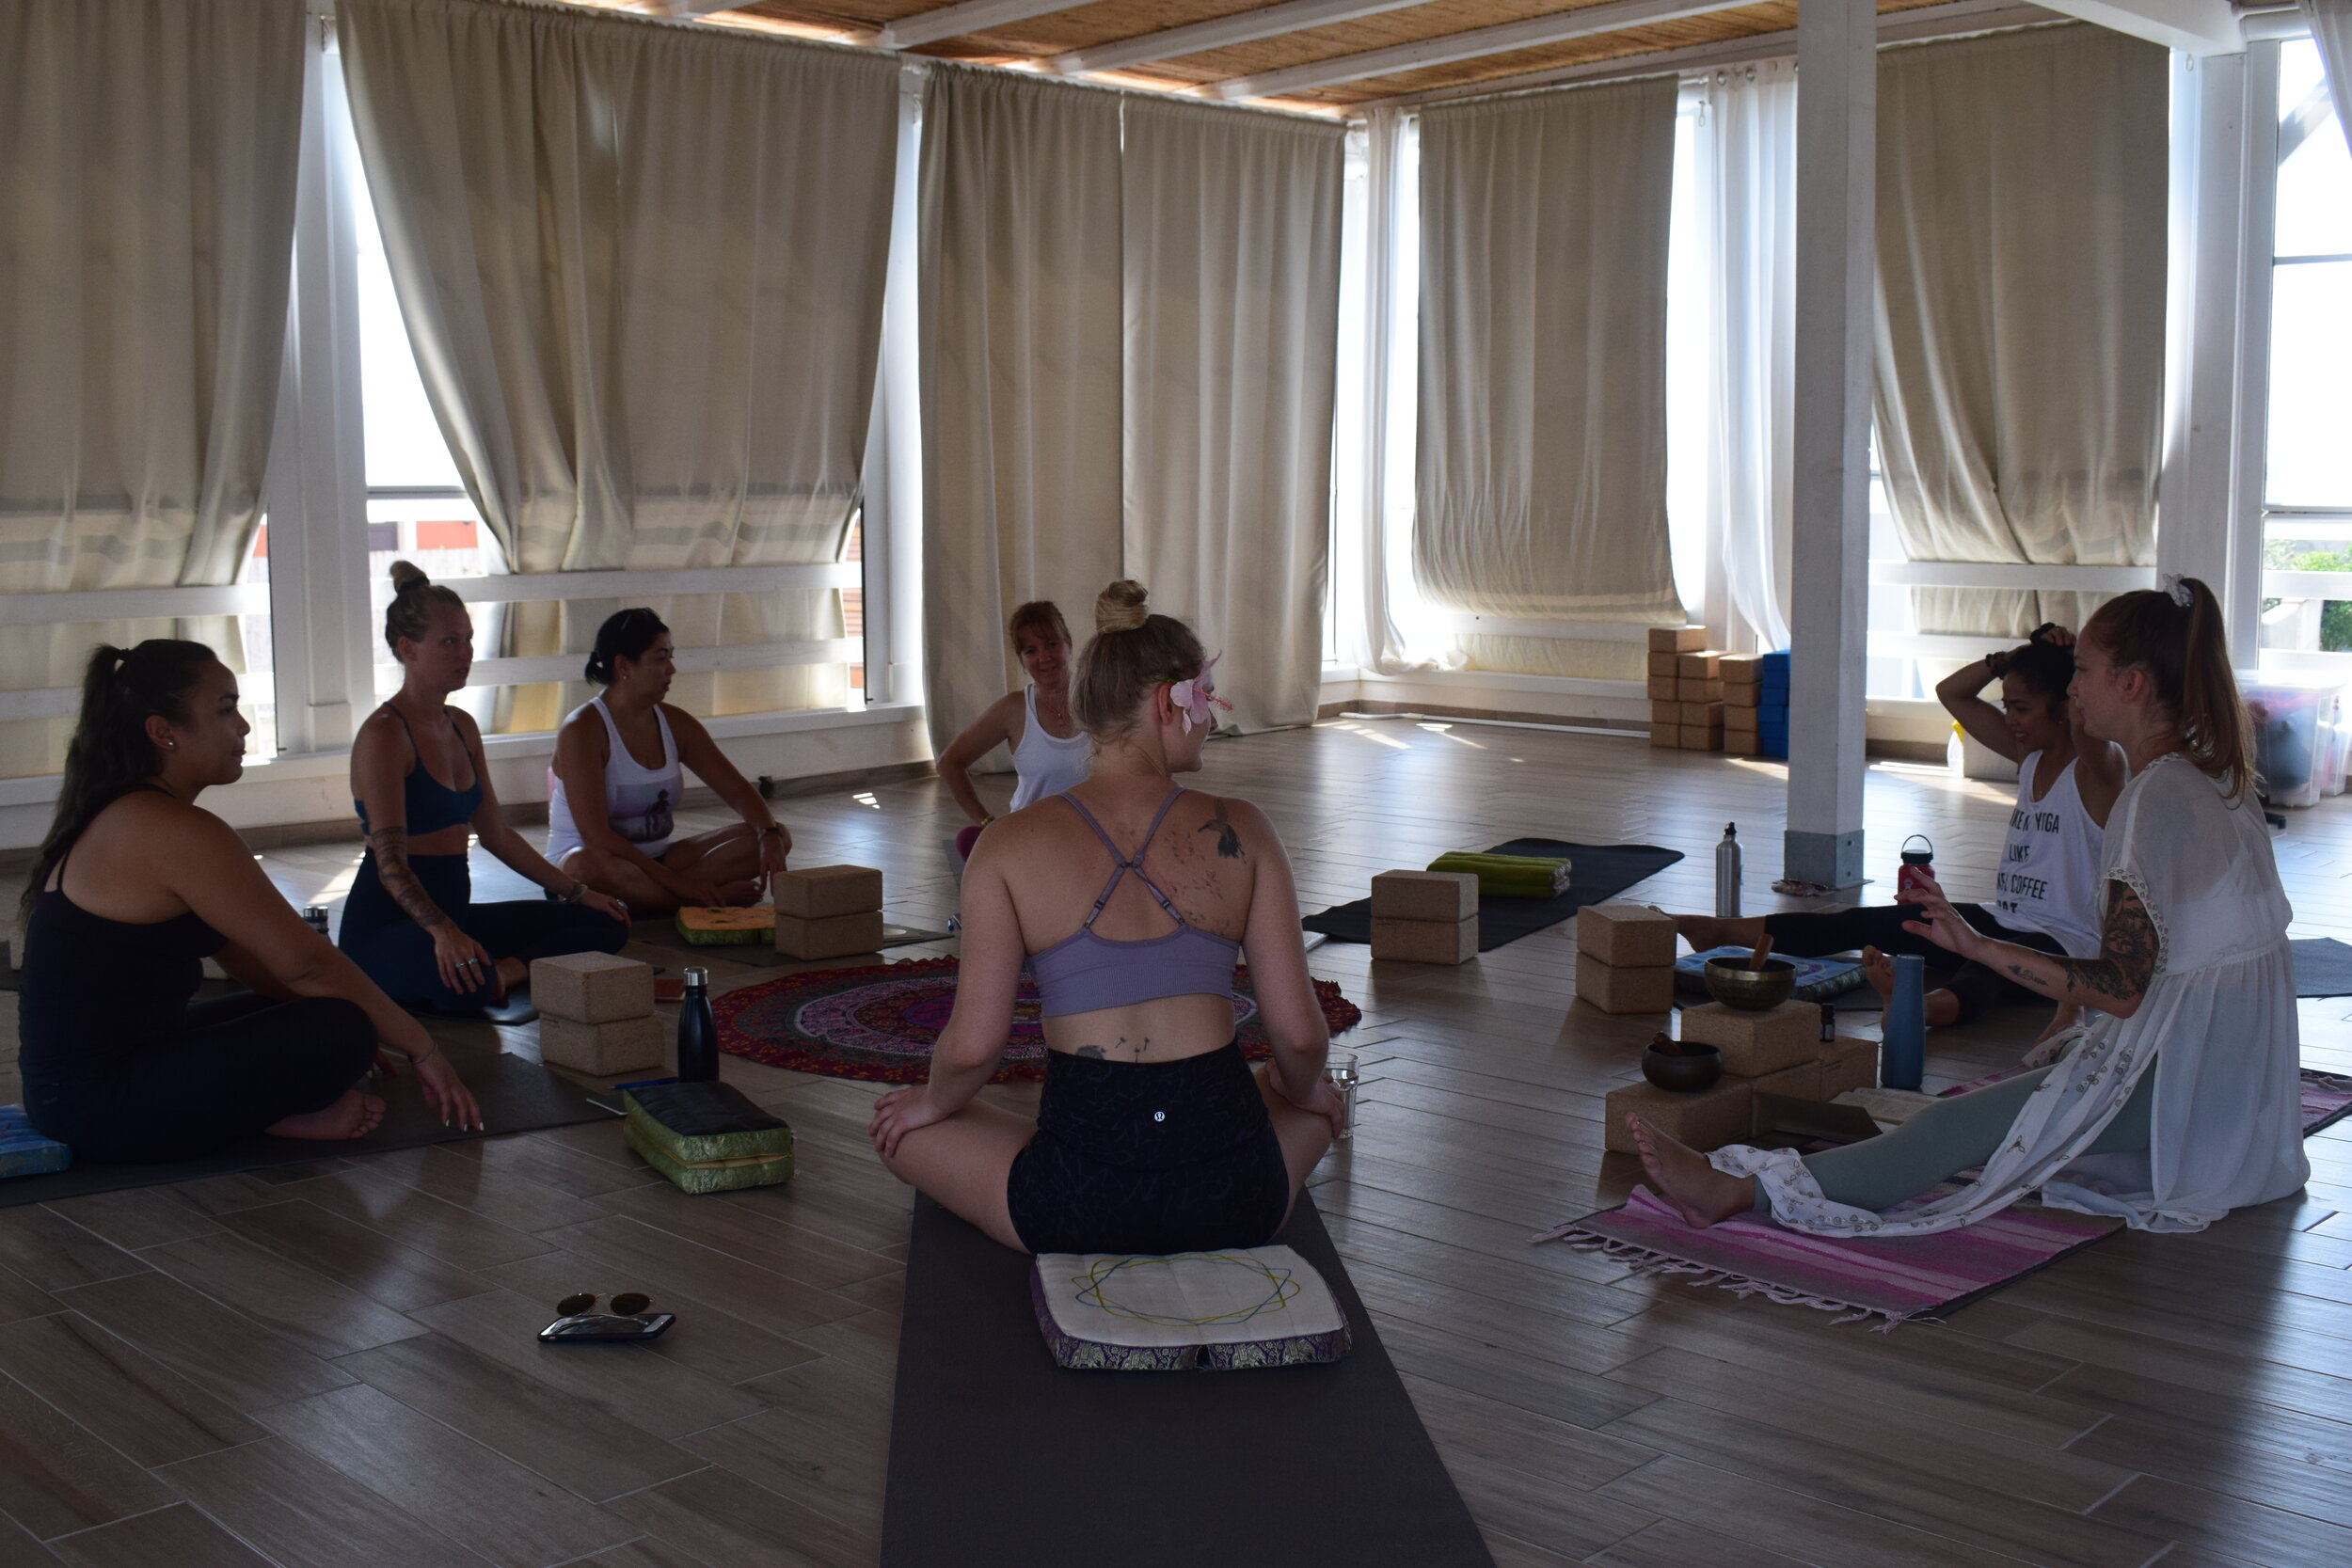 Group Yoga Therapy - Group yoga therapy is offered by professionals who integrate psychotherapy with yoga to help address mental health challenges.In collaboration with Yoga Therapists, we offer a limited number of pay what you can spots.